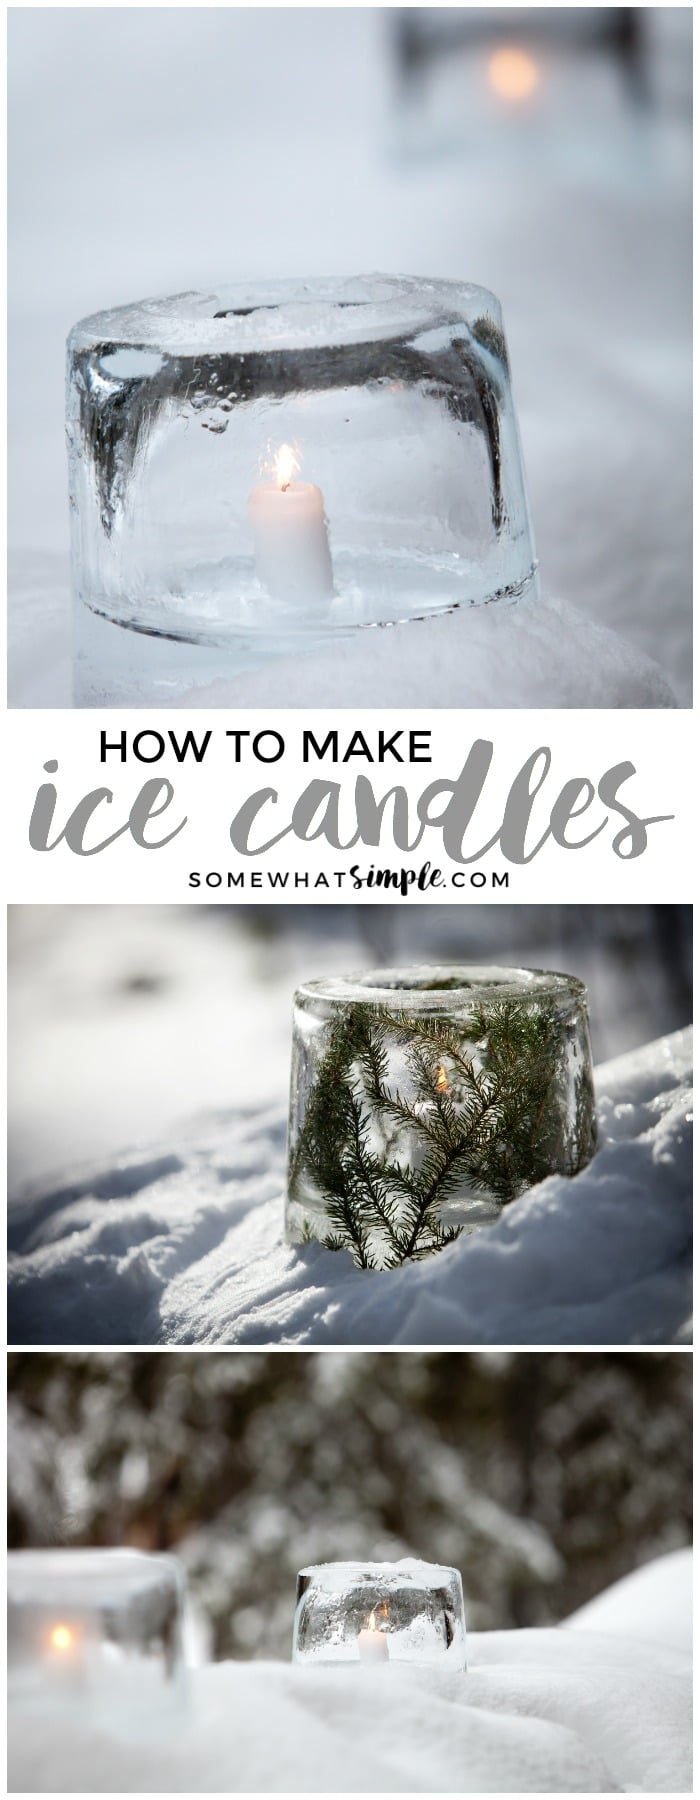 These ice candles will transform your walkway into a winter wonderland!